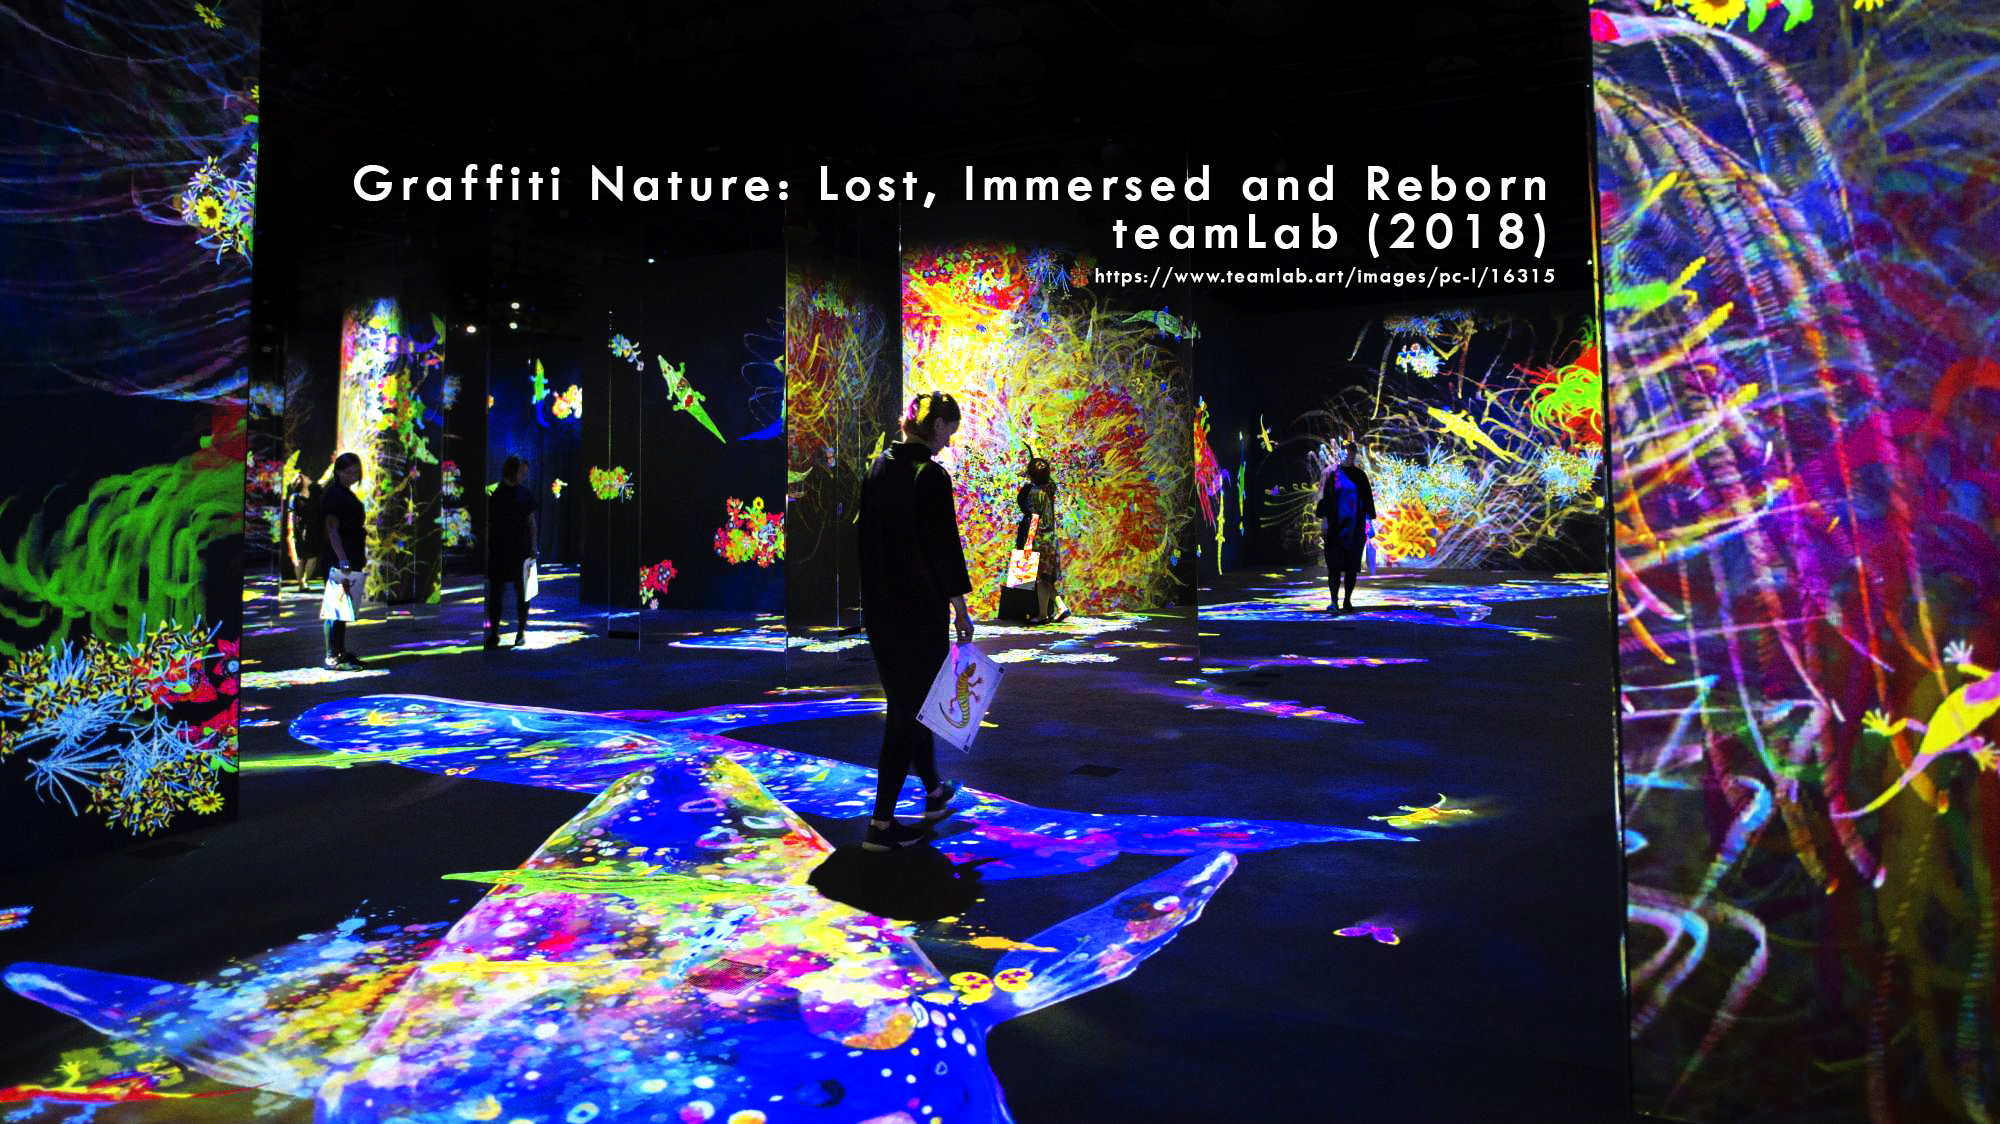 [Final Hyperessay] teamLab – Graffiti Nature: Lost, Immersed and Reborn (2018)